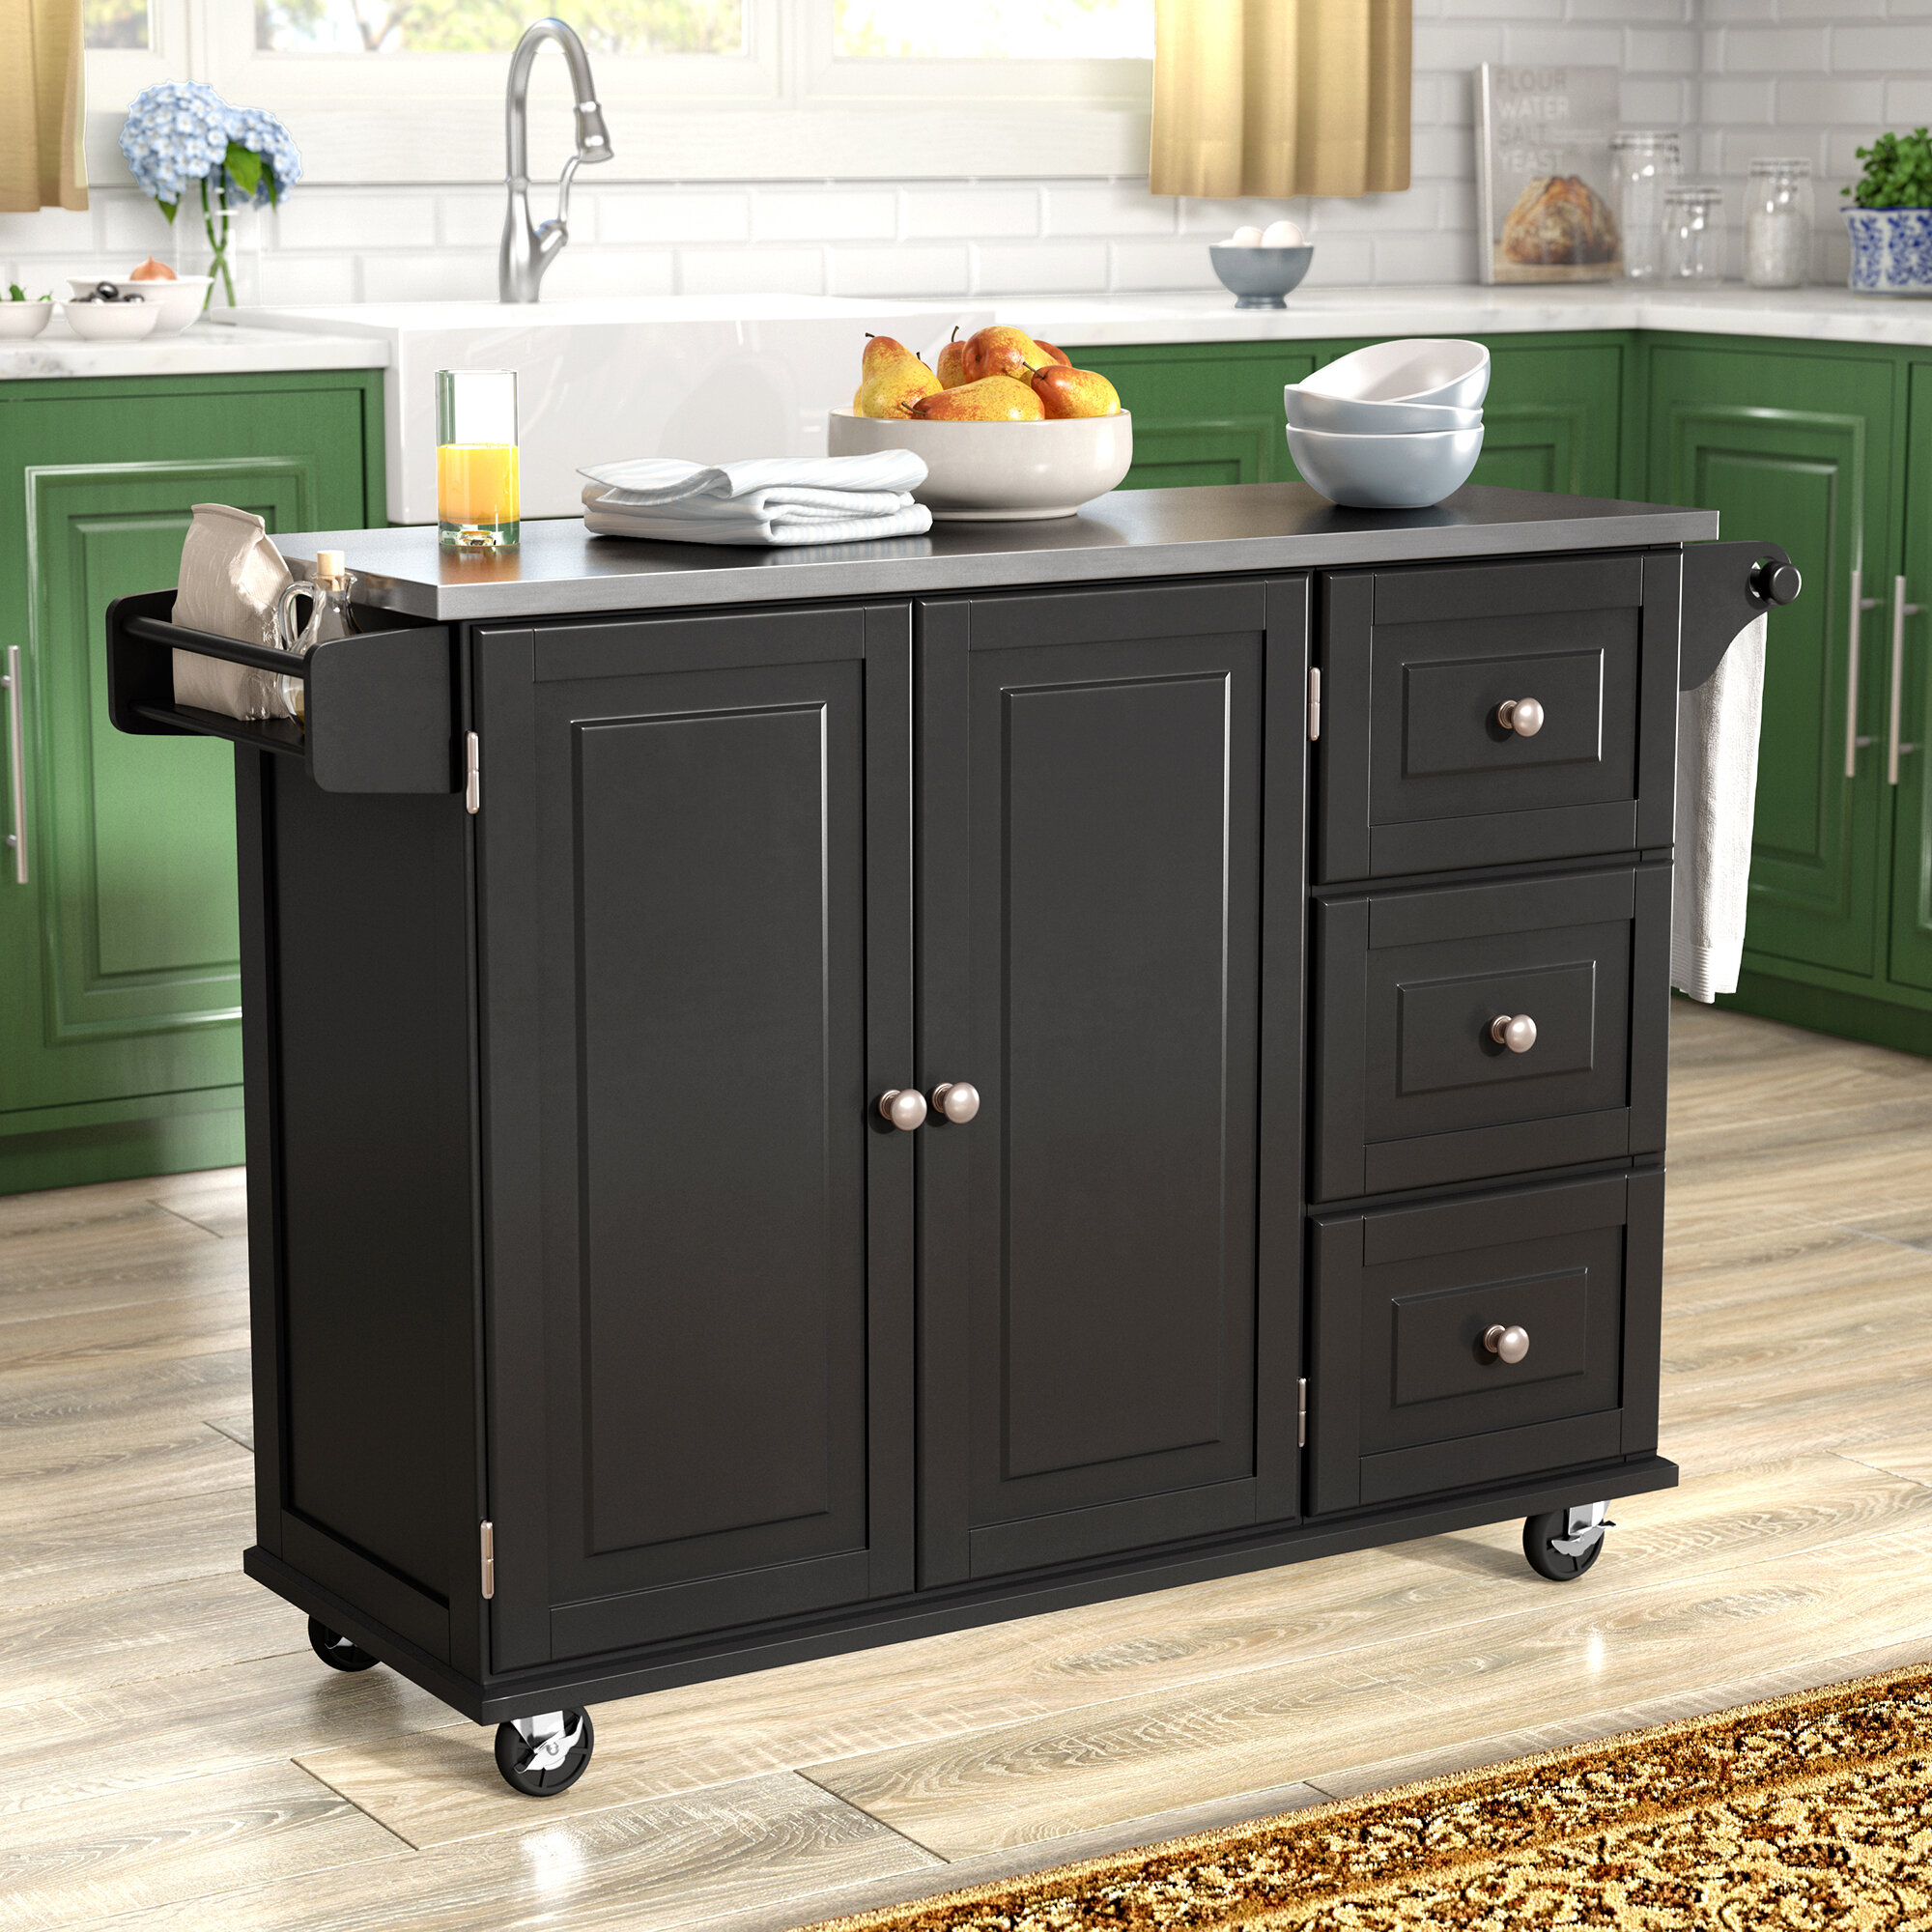 Andover Mills Kuhnhenn Kitchen Island With Stainless Steel Top Reviews Wayfair